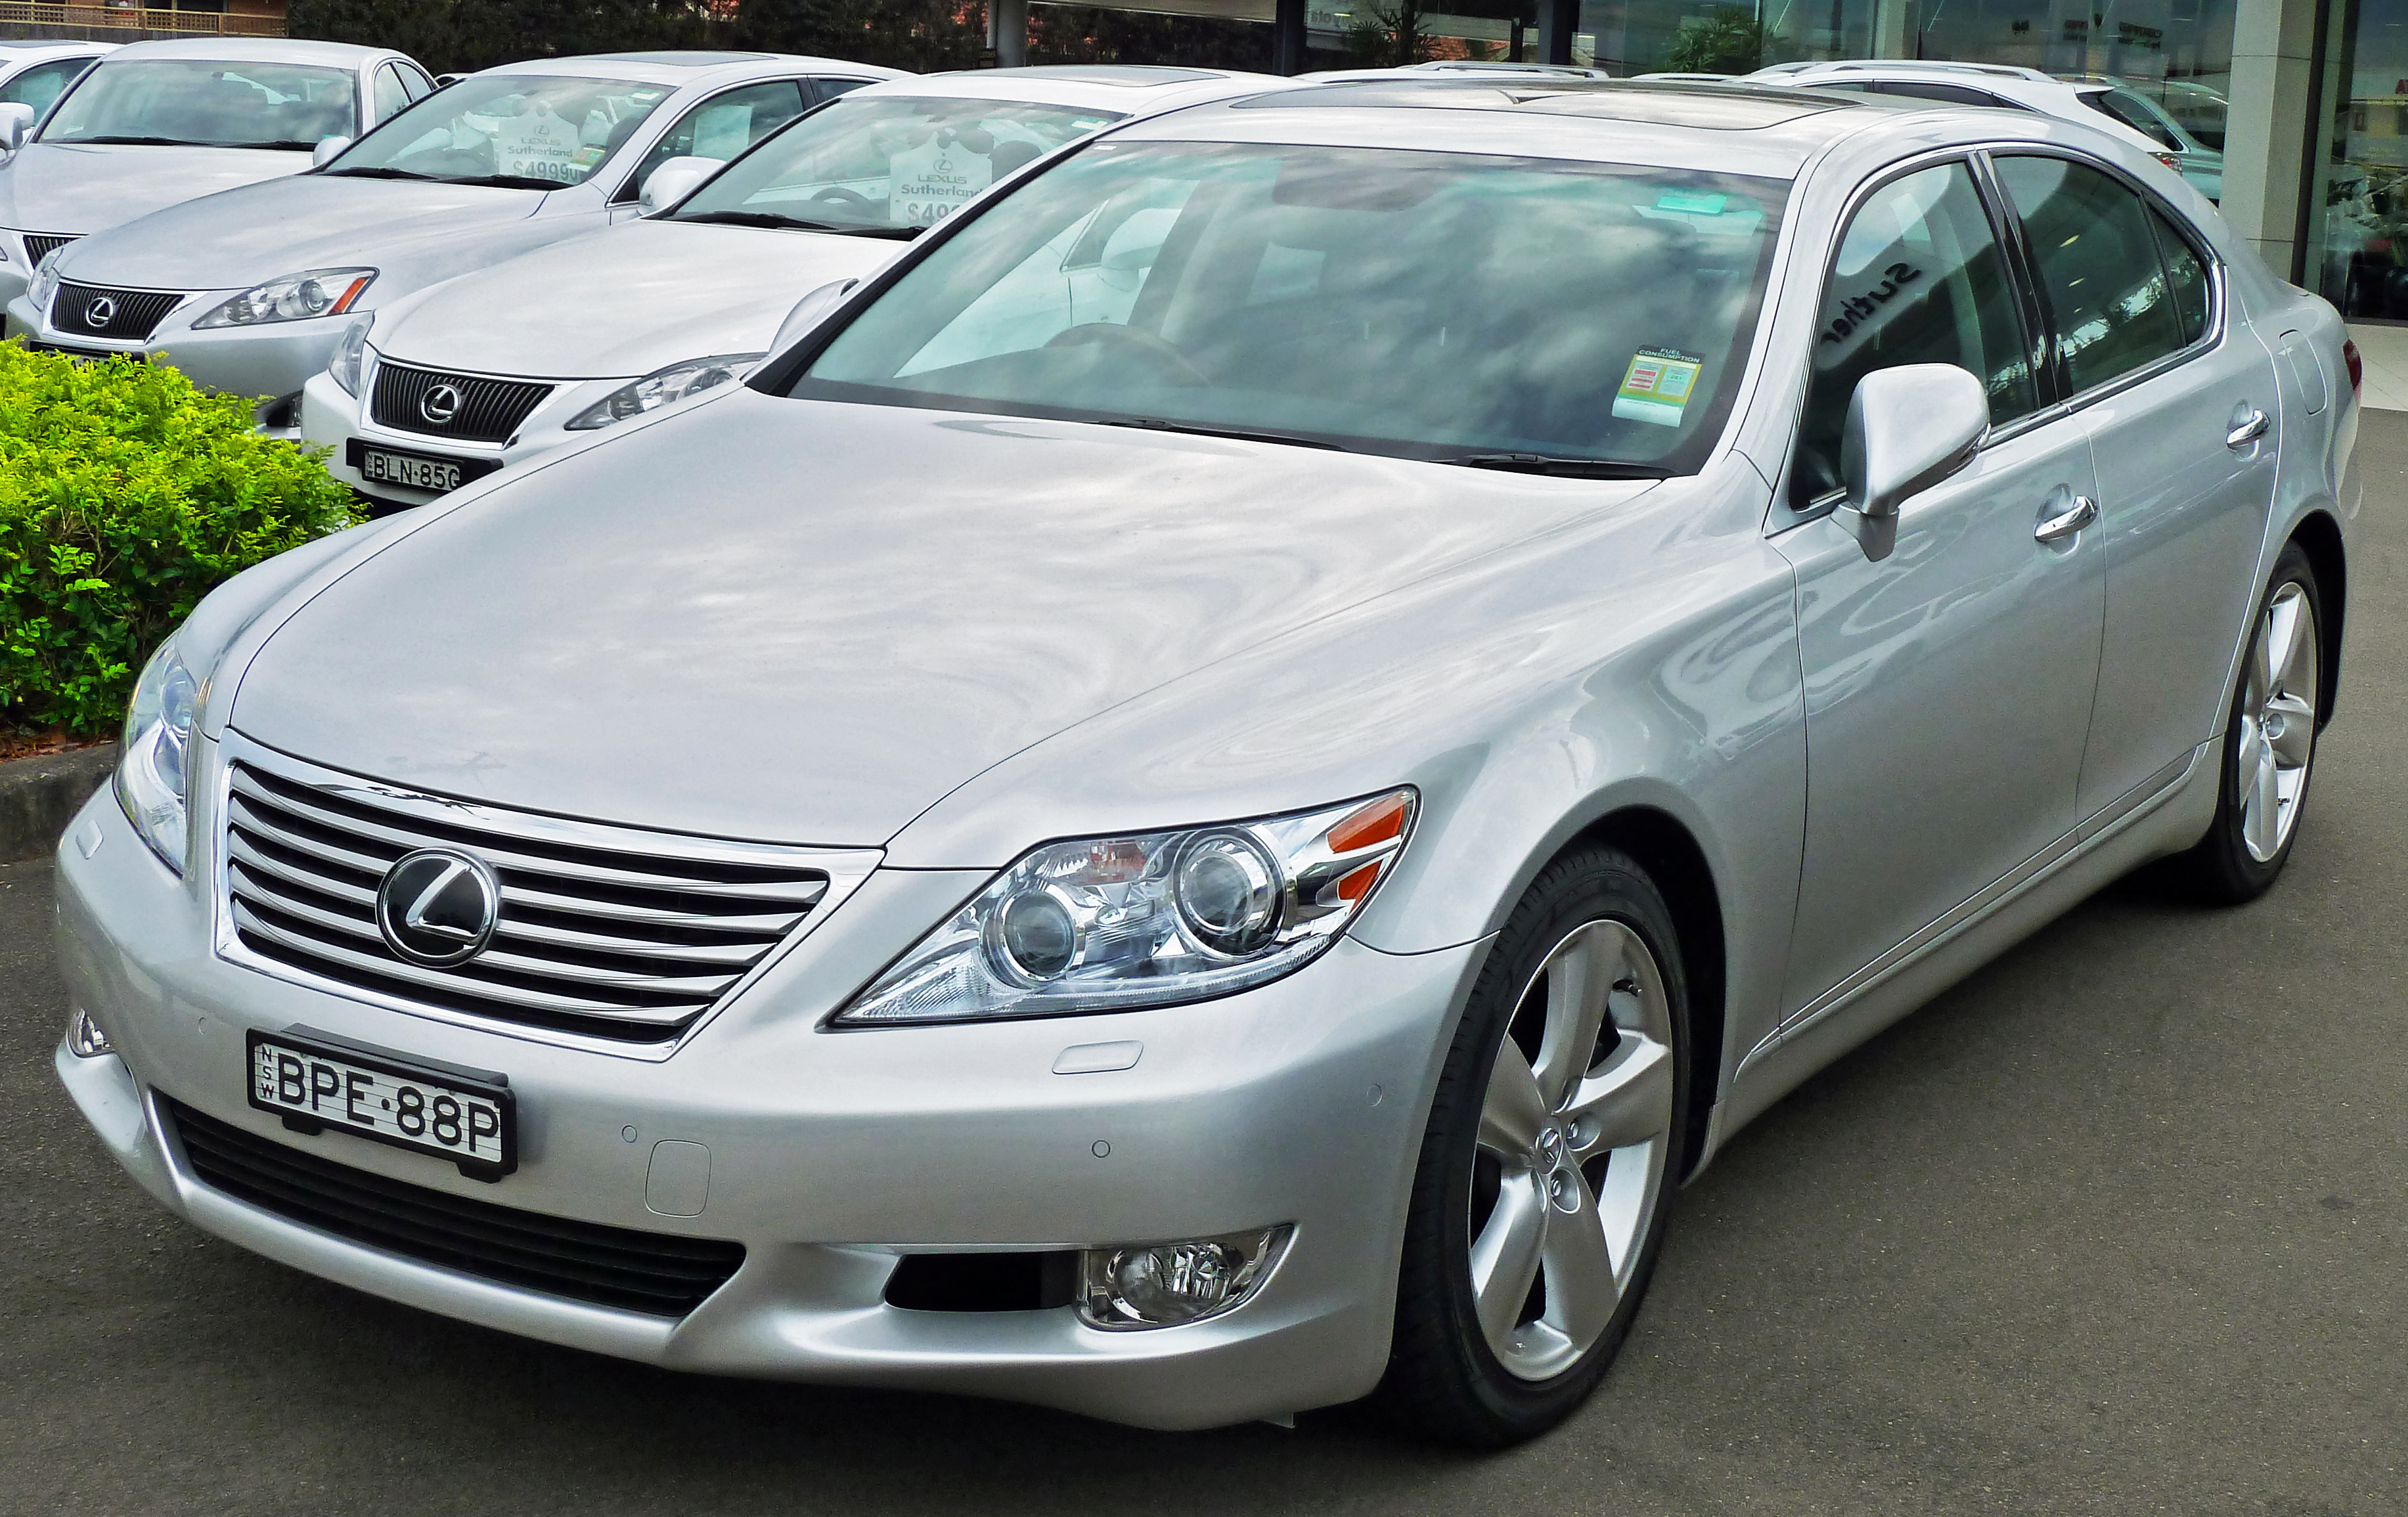 Need information regarding this OEM wheels for the Lexus LS XF40